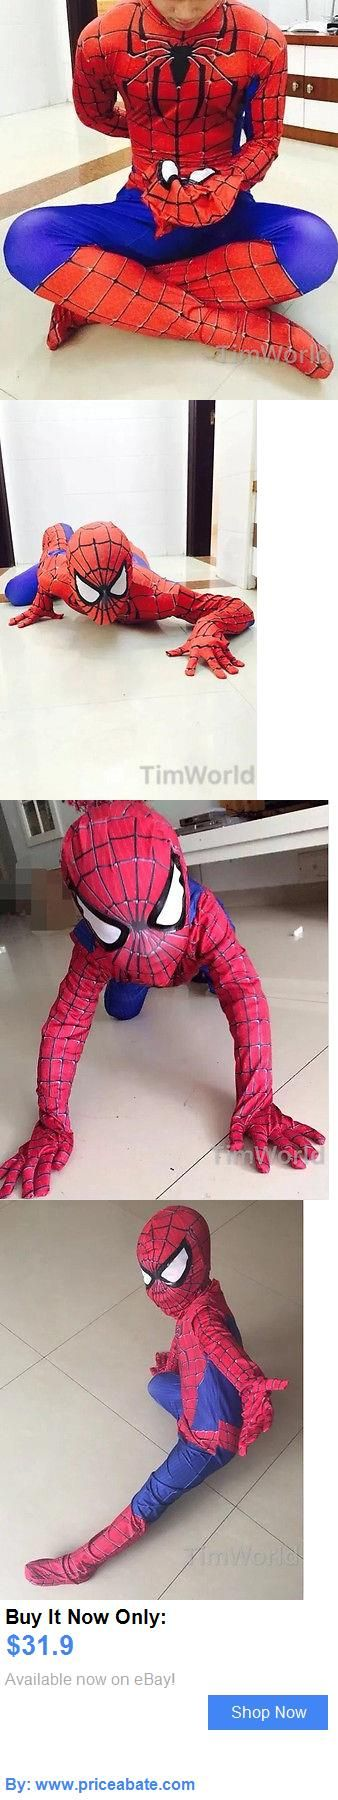 Men Costumes: Adult Kids All Size Marvel Deluxe Spiderman Outfit Jumpsuit Fancy Dress Costume BUY IT NOW ONLY: $31.9 #priceabateMenCostumes OR #priceabate